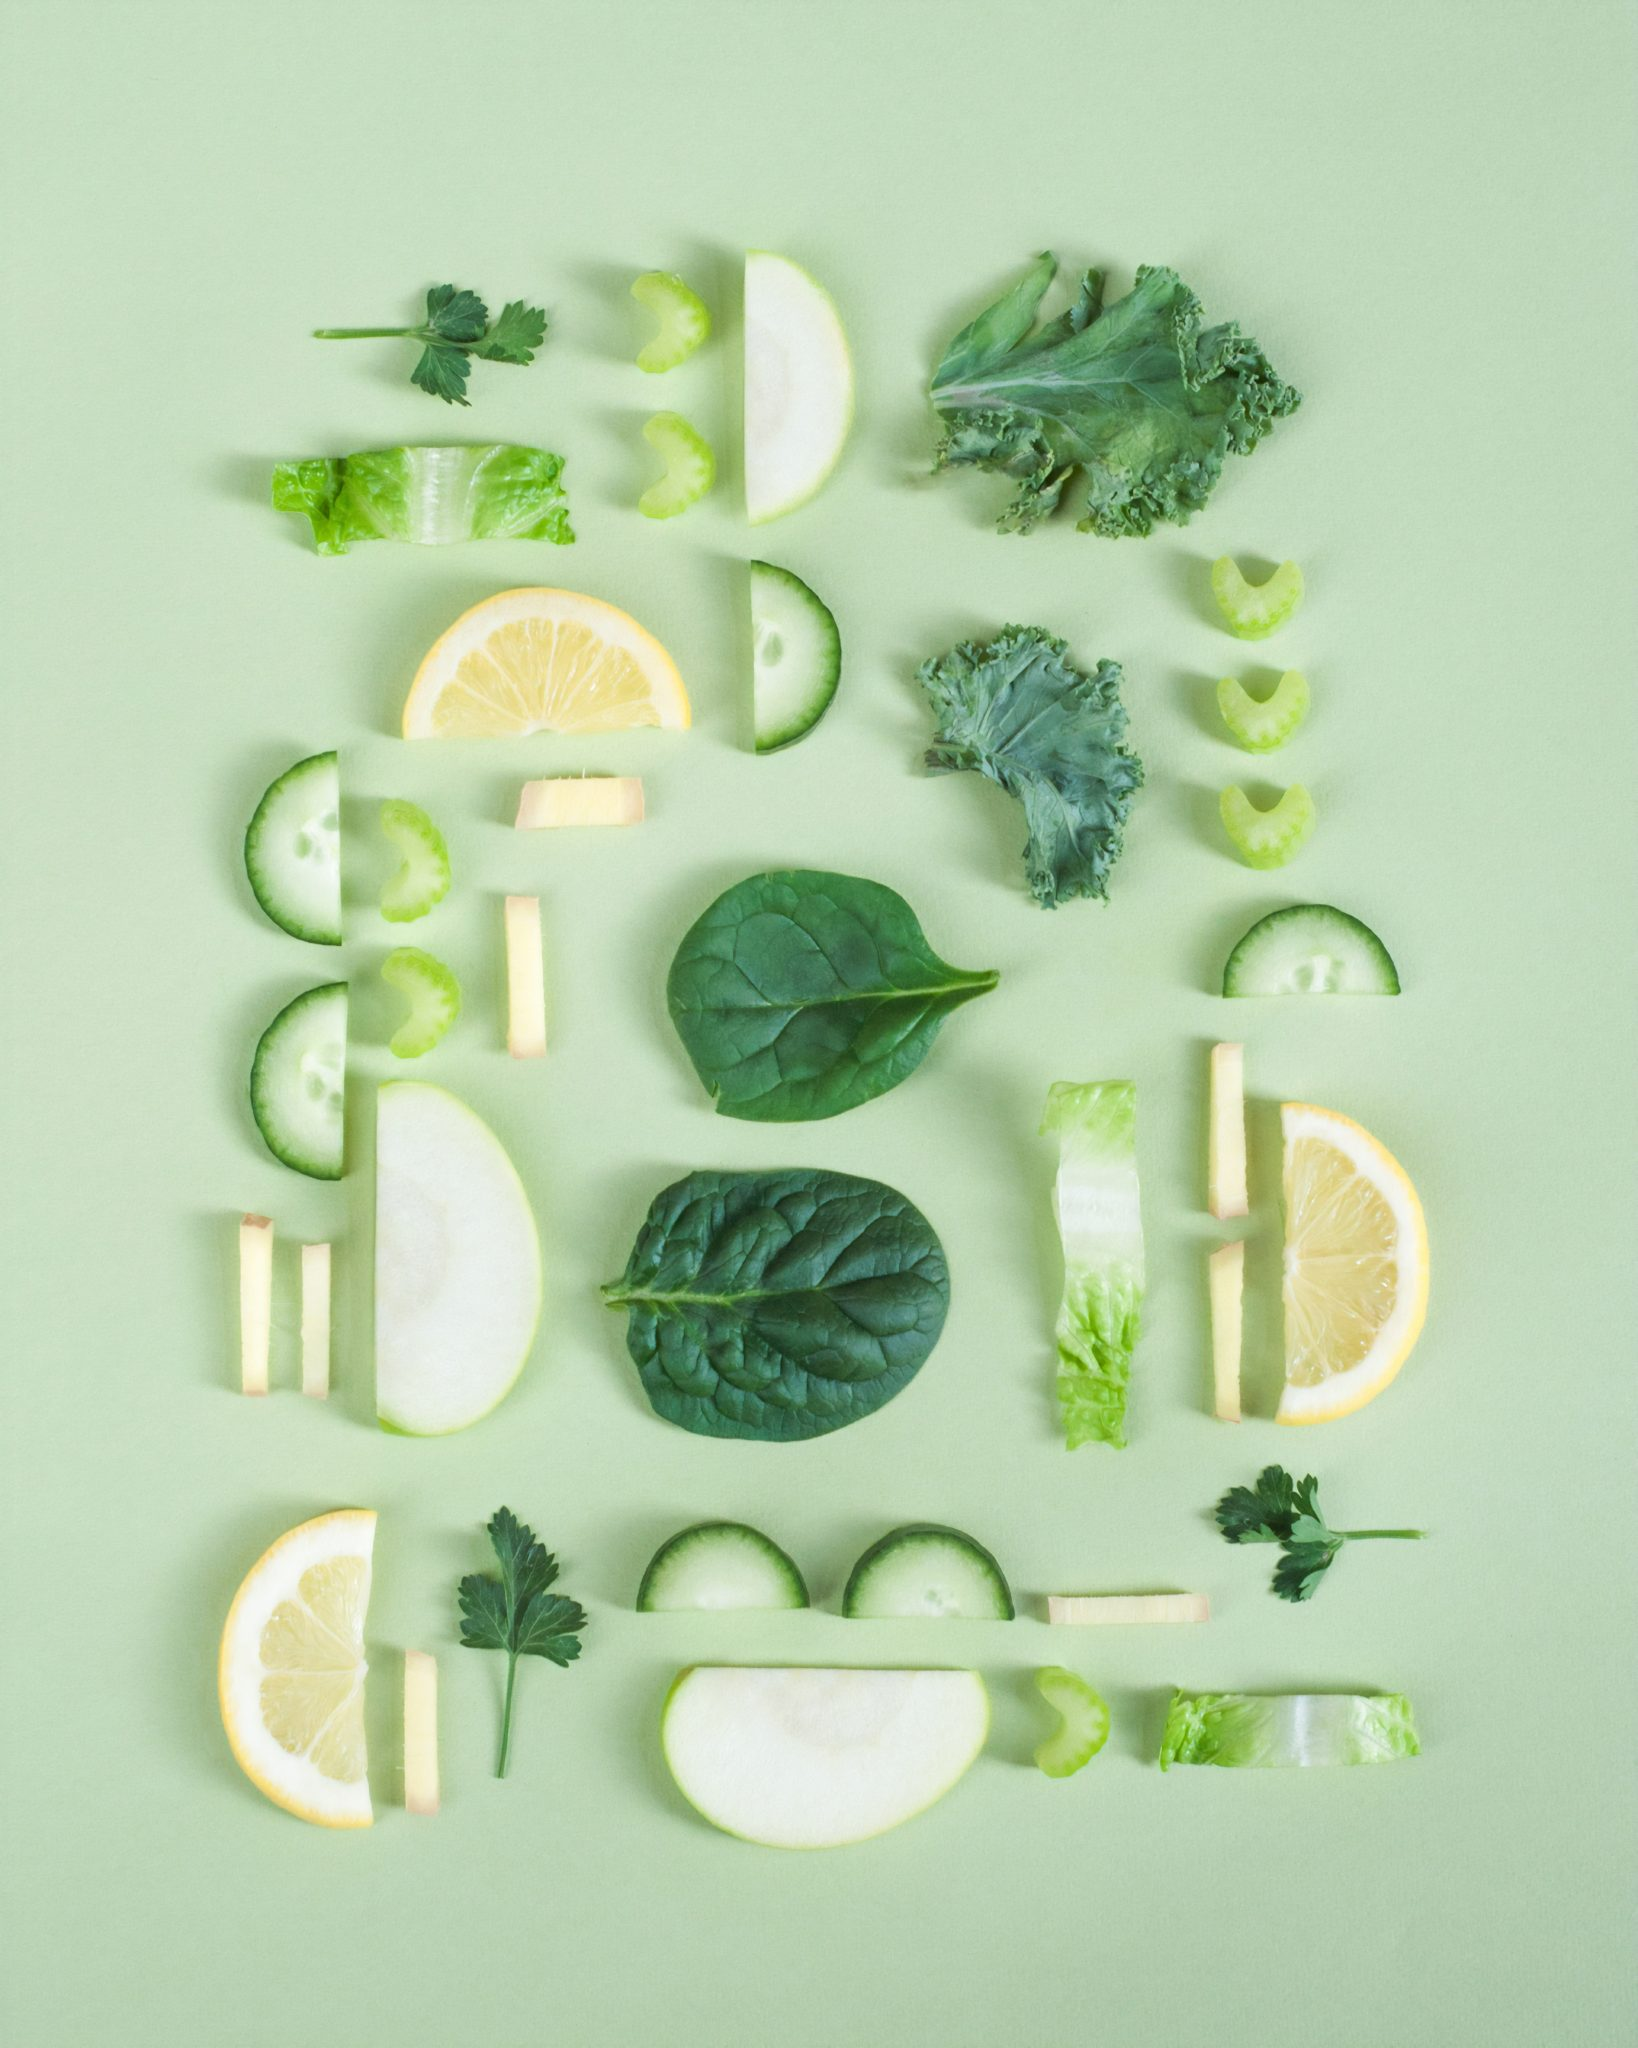 a variety of vegetables like lemon, cucumber and apple cut into moon shapes